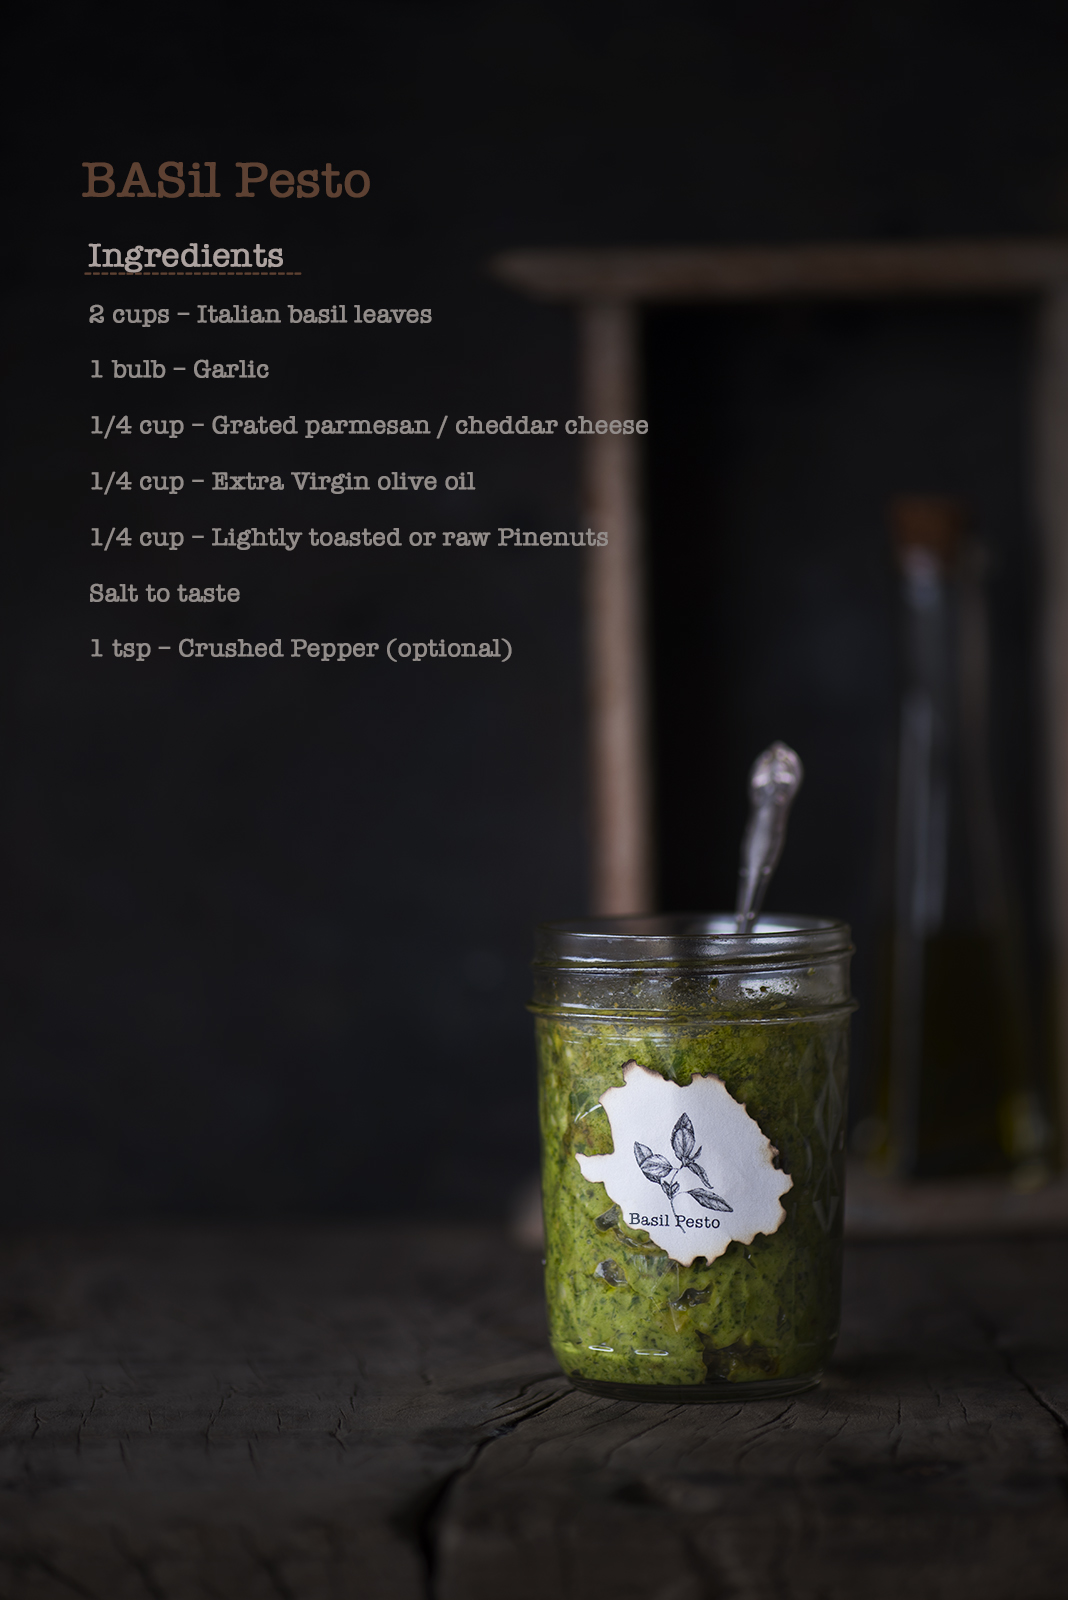 Learn how to make Basil Pesto with this easy peasy recipe using Fresh Basil leaves, Garlic, Pine nuts, Parmesan Cheese and Olive oil. Basil Pesto is one of basics in Italian dishes.